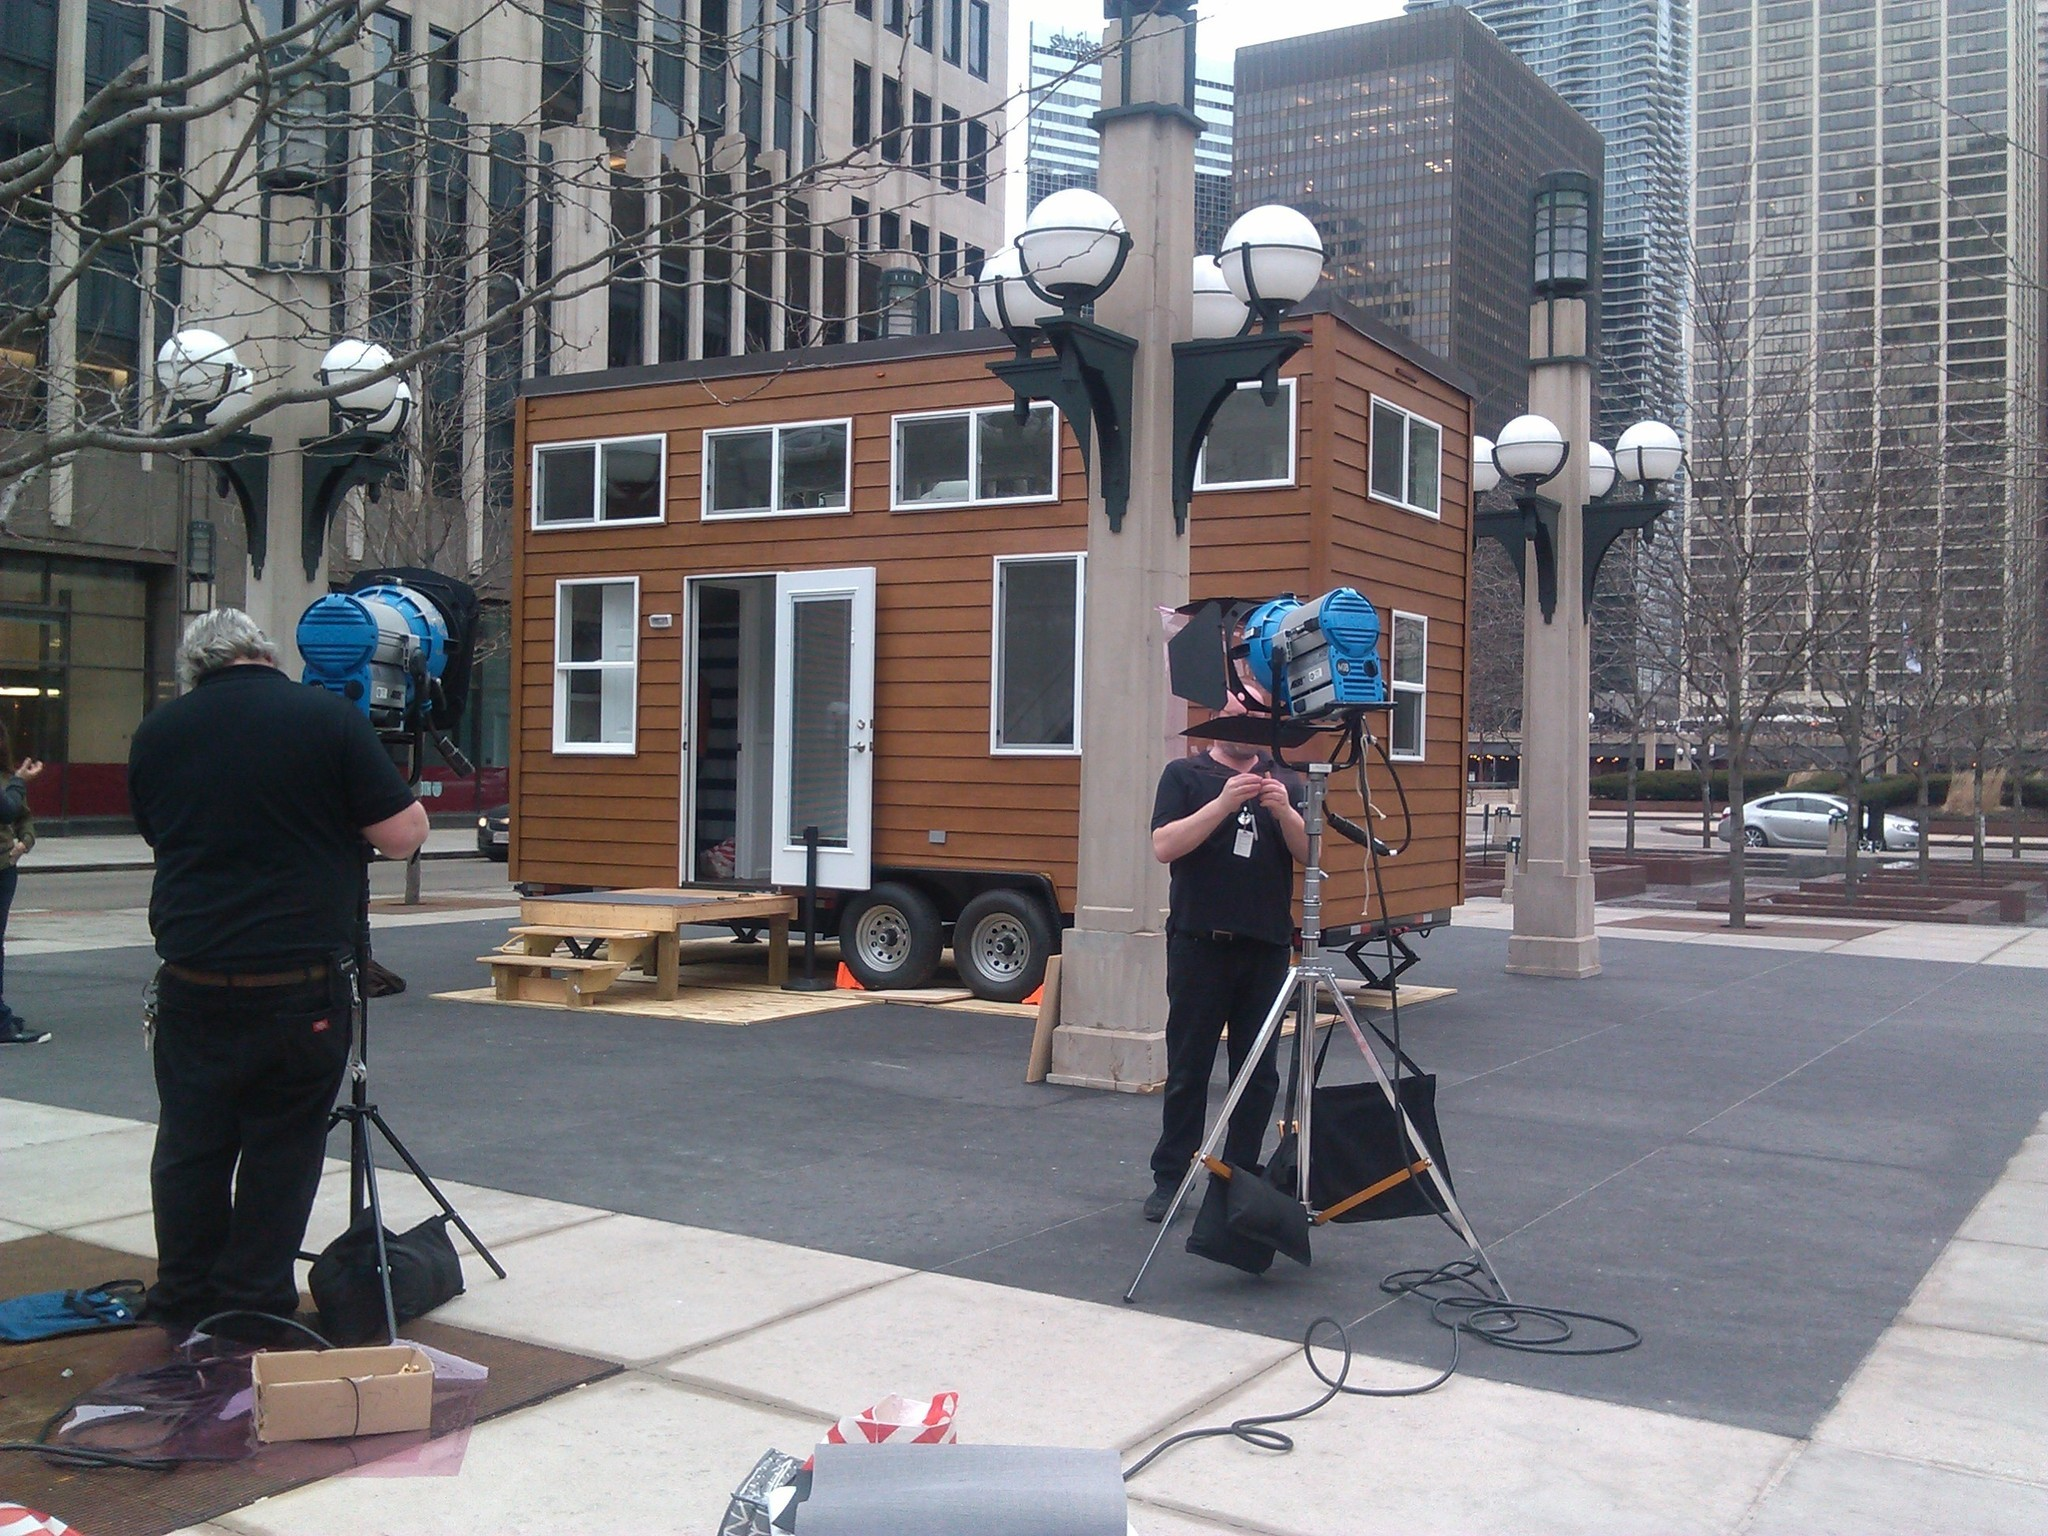 tiny house set up outside nbc tower for 'steve harvey' taping